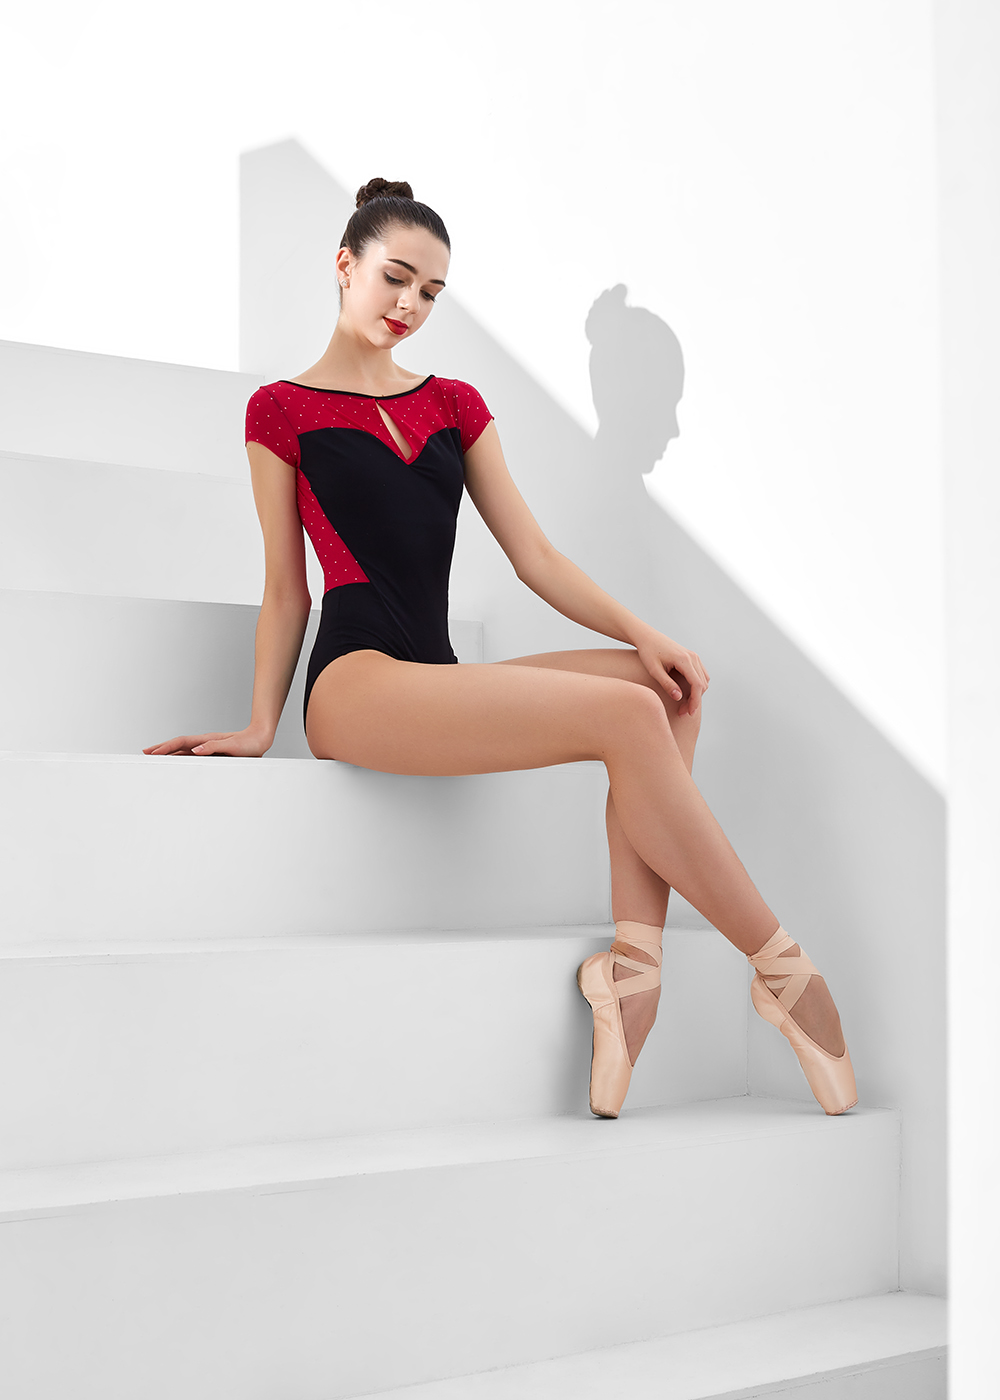 ANTONINA, CAP SLEEVE LEOTARD BY NIKOLAY